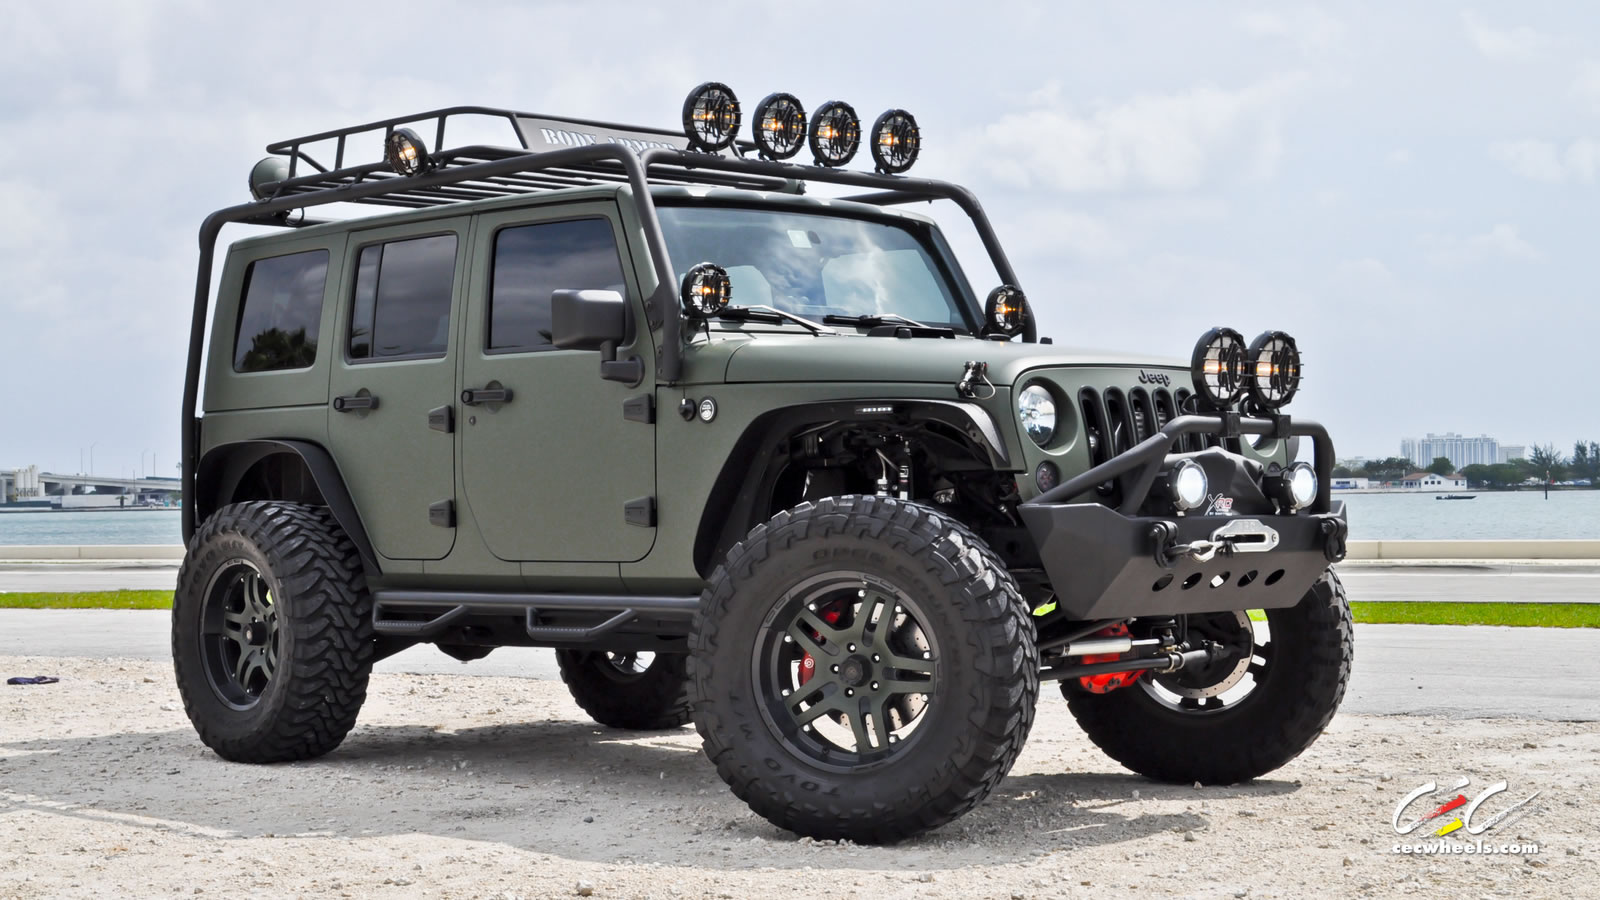 2019 Jeep Hurricane Concept photo - 4